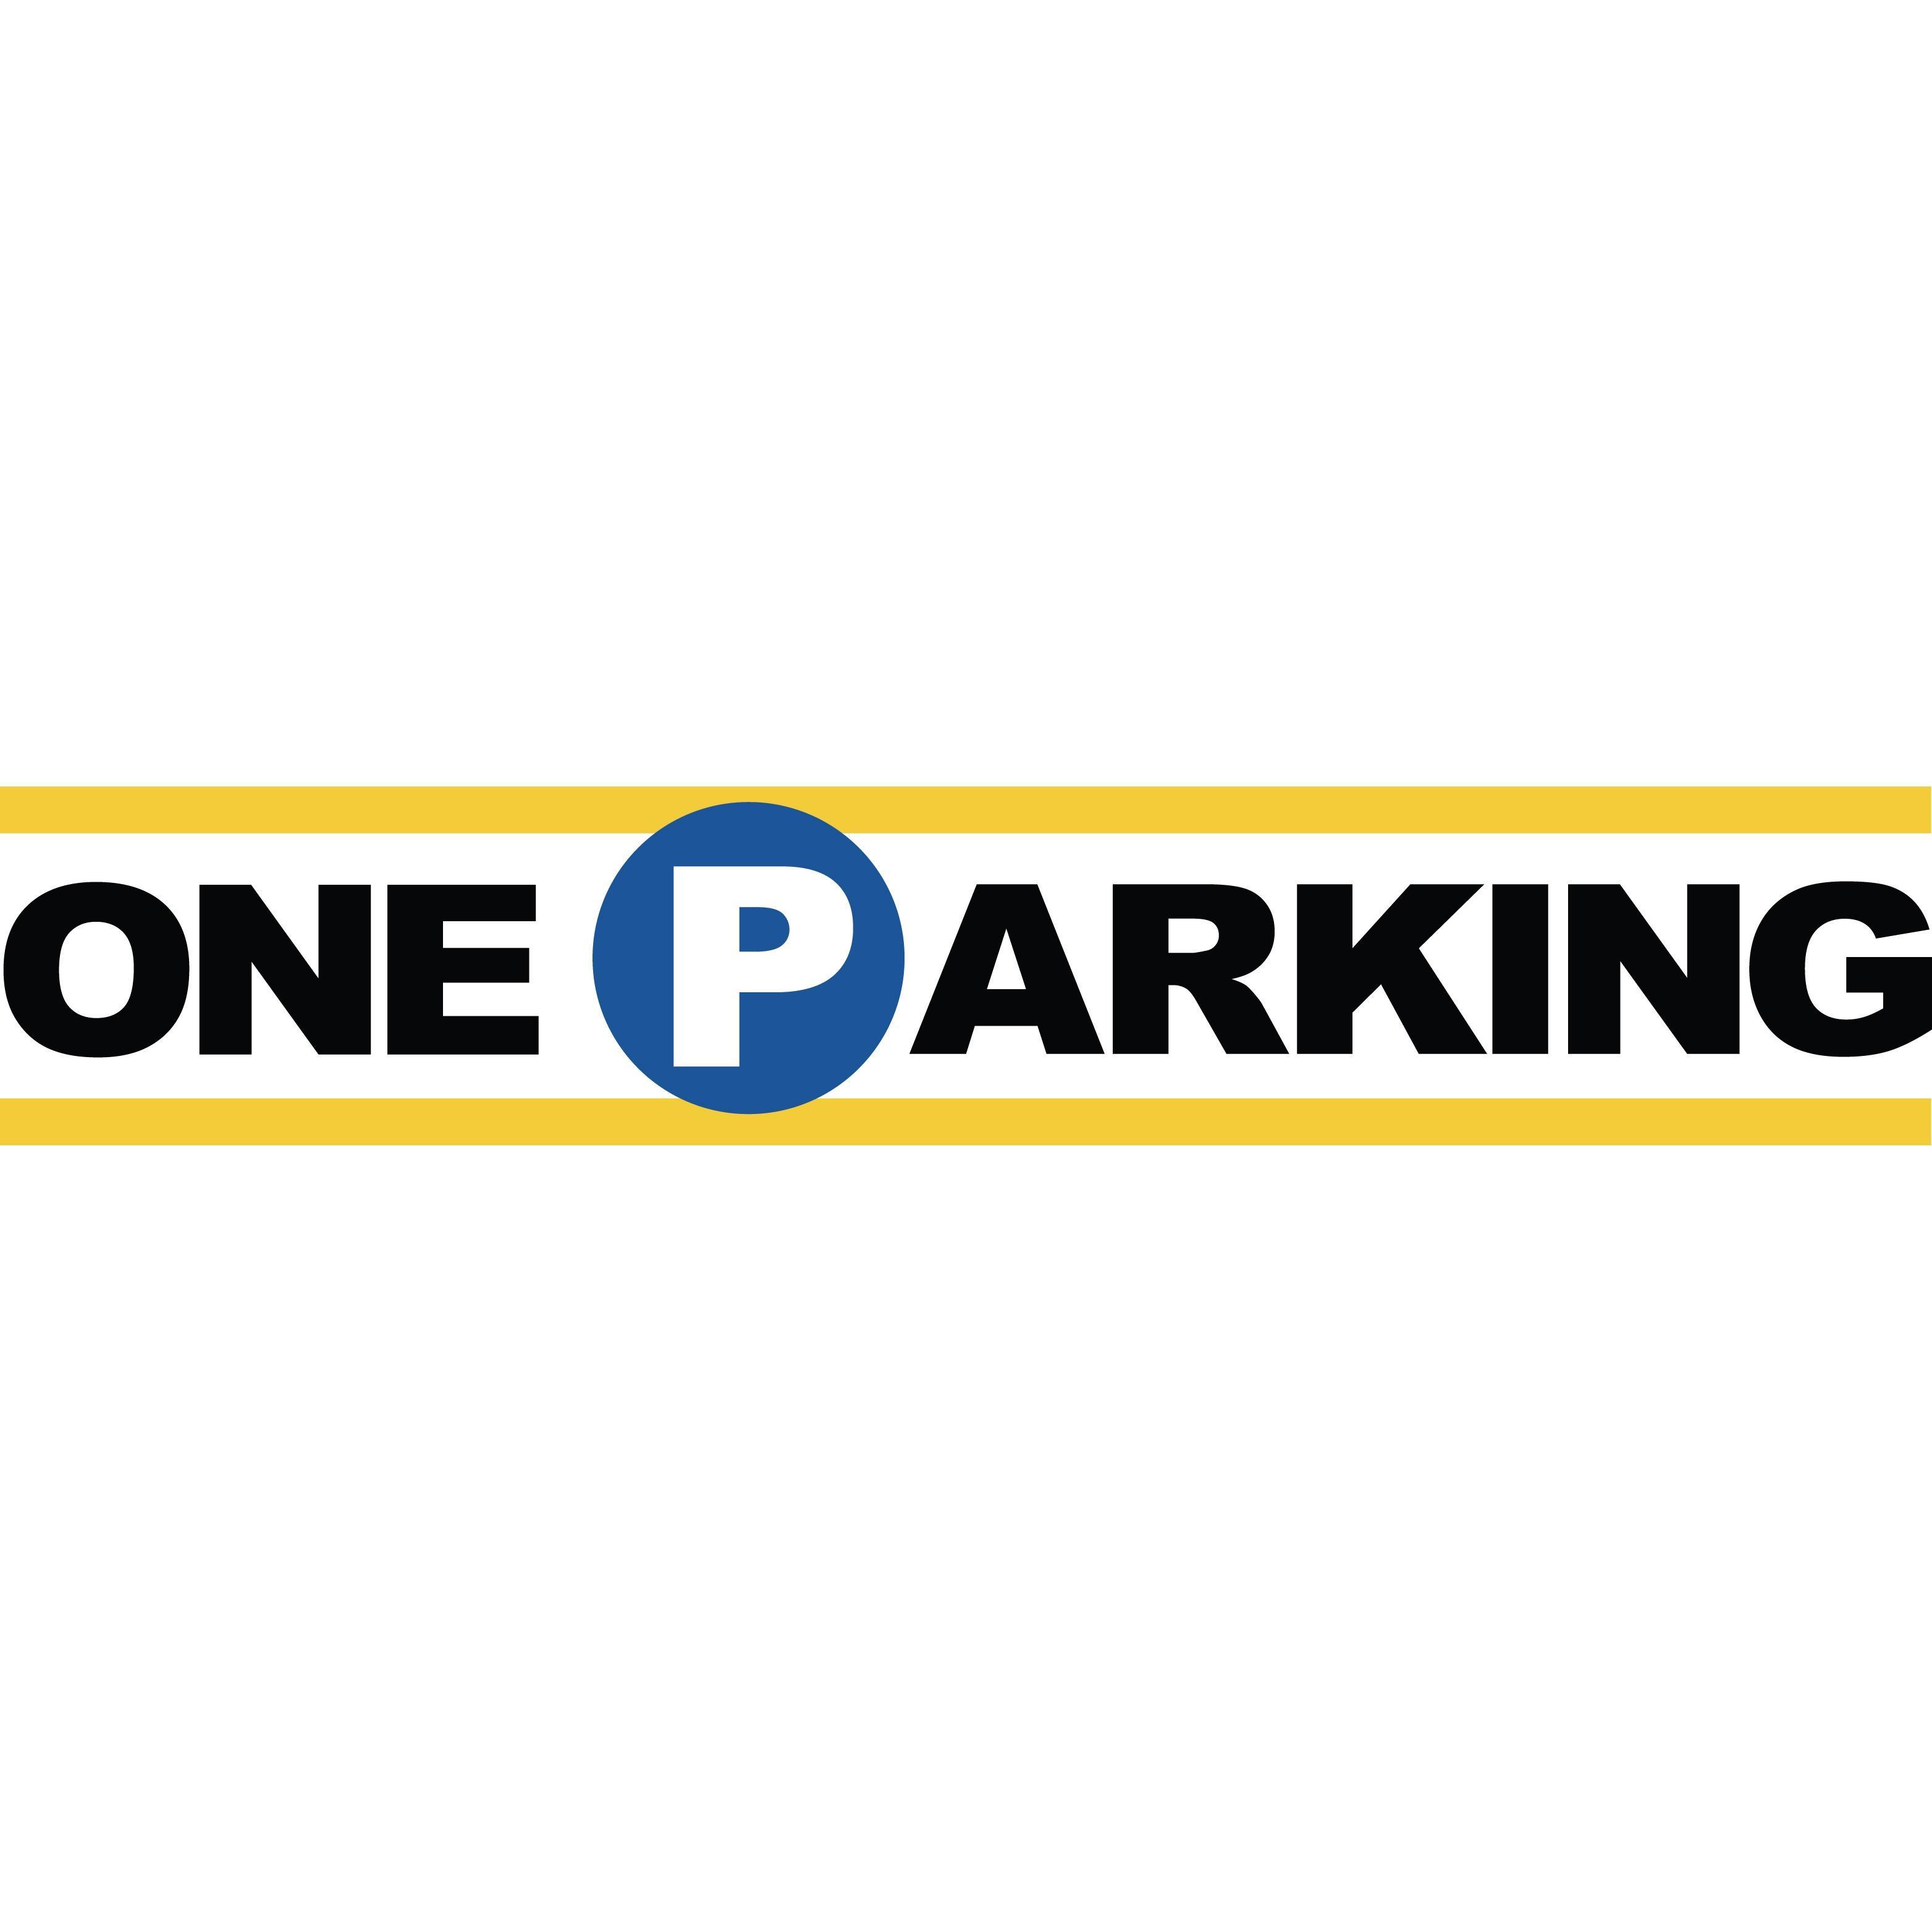 One Parking